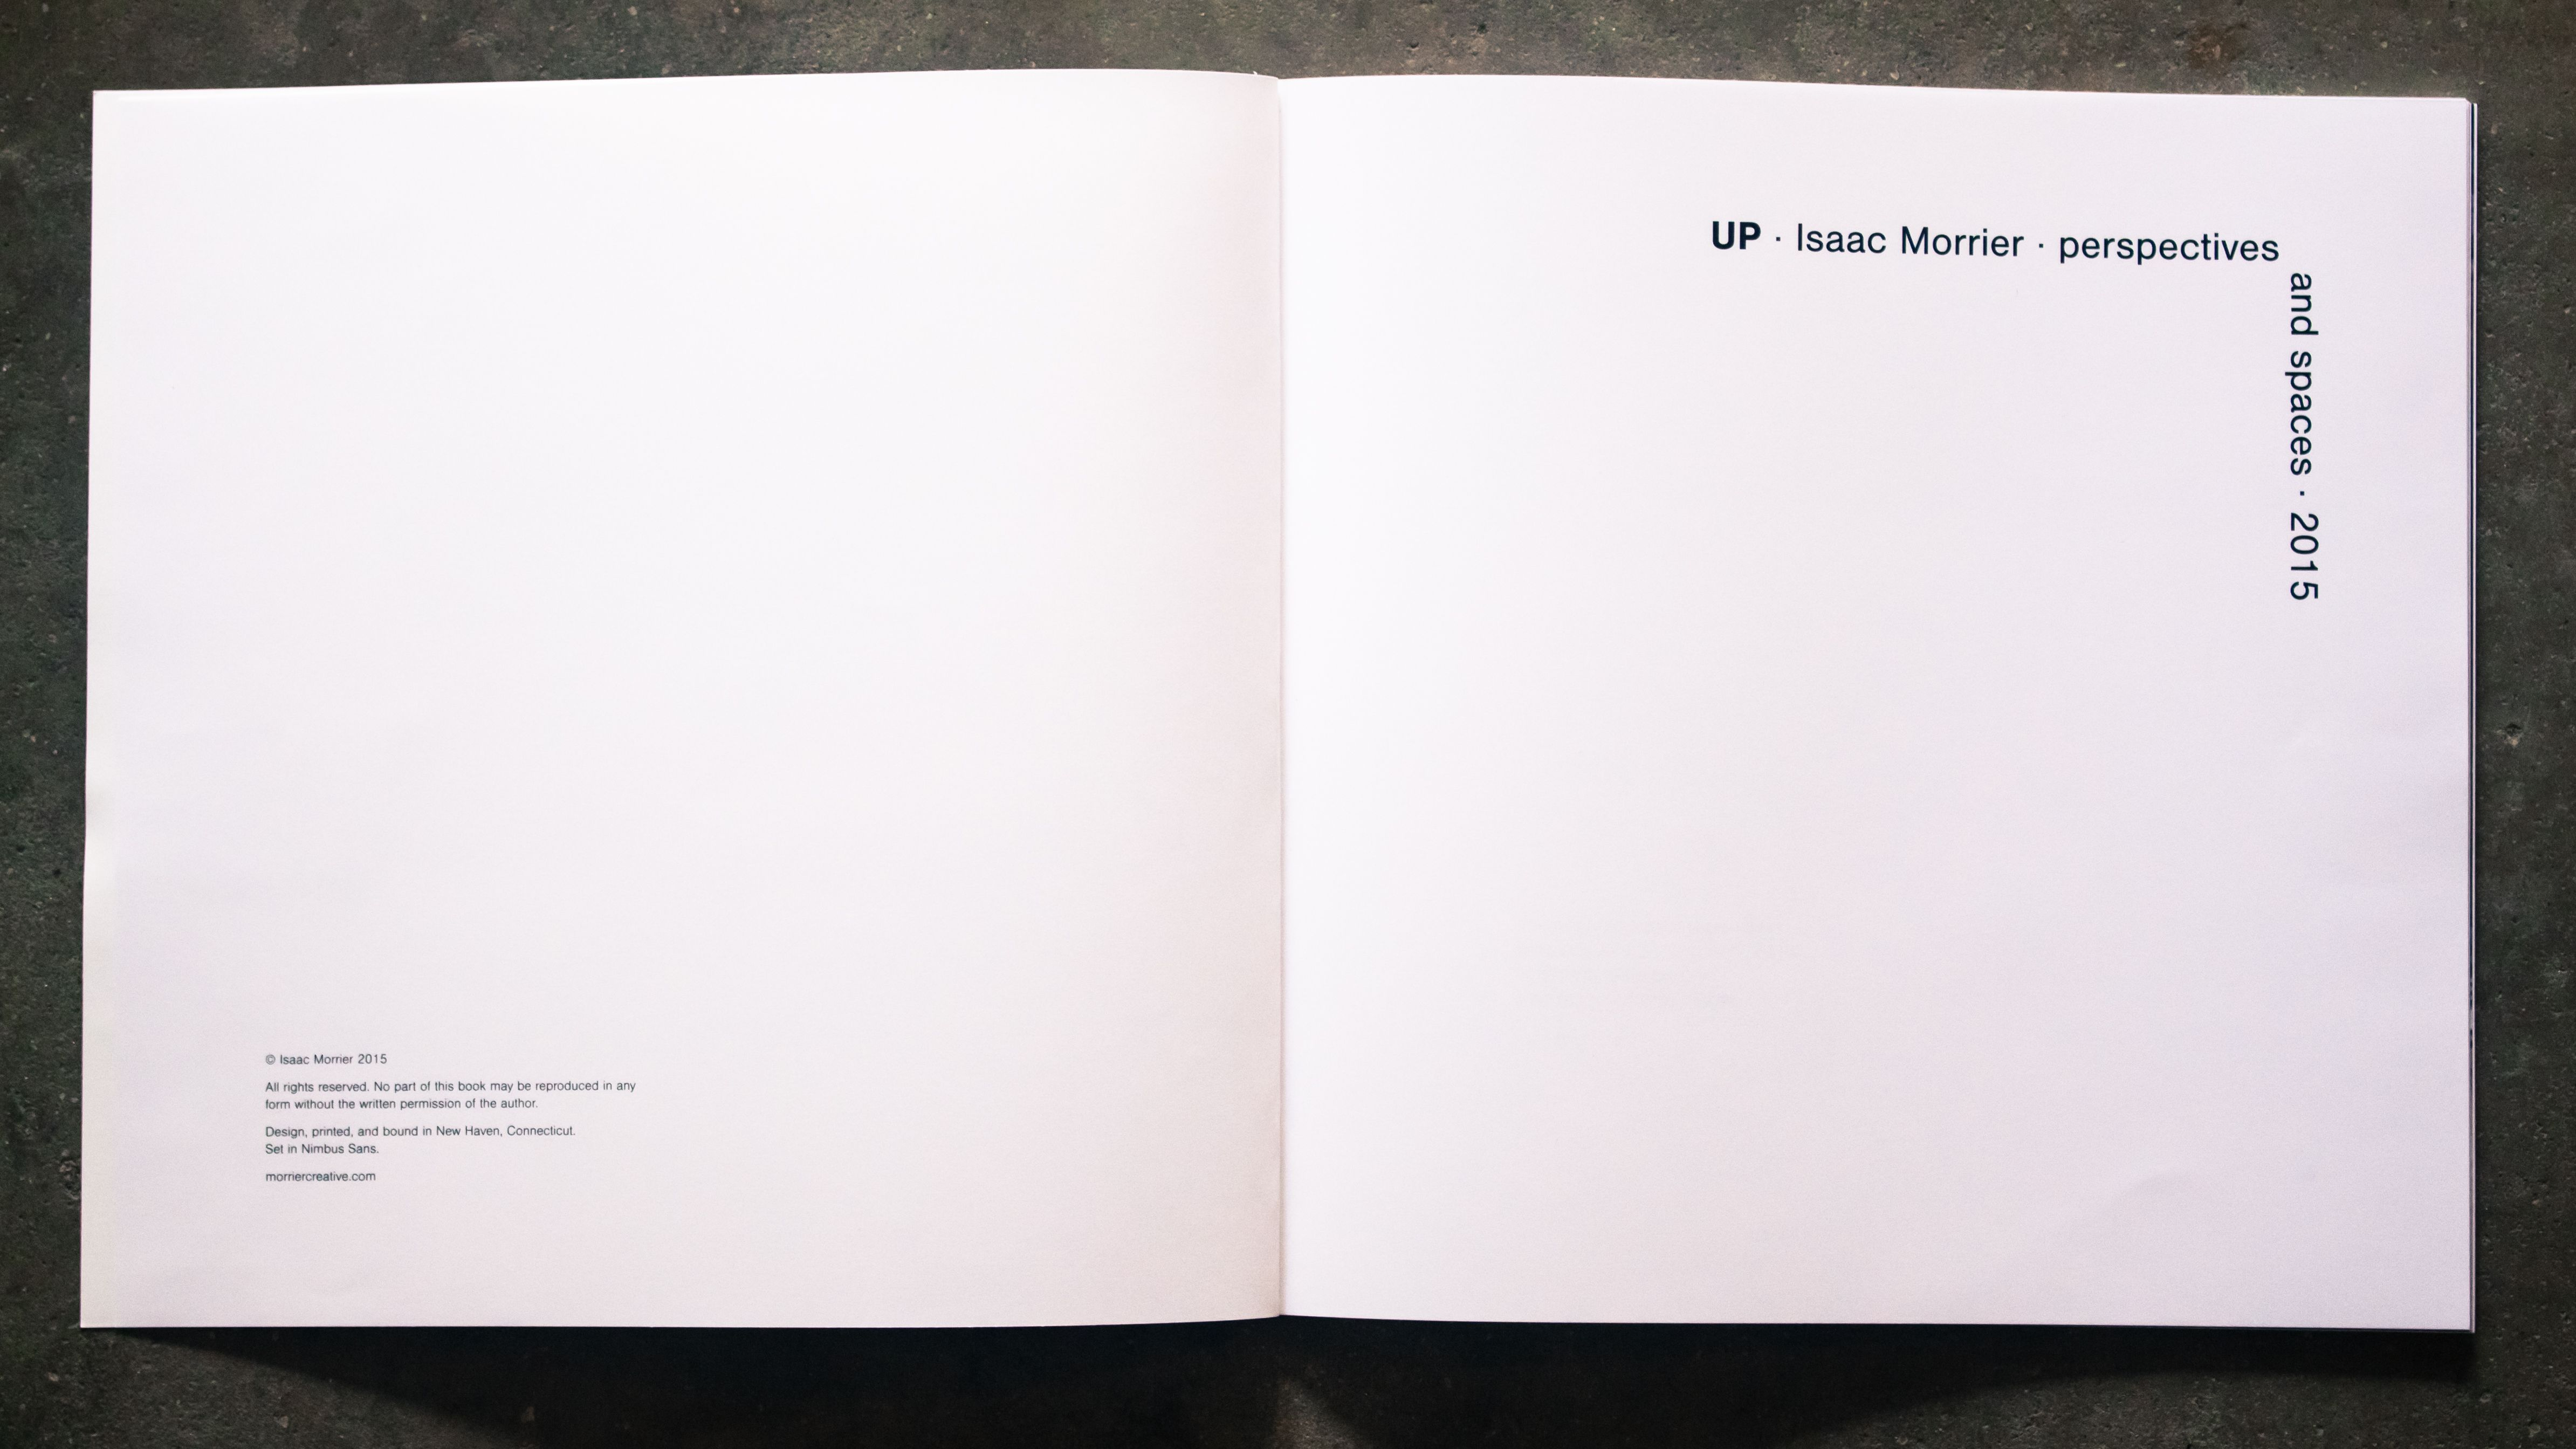 The title page of Up.